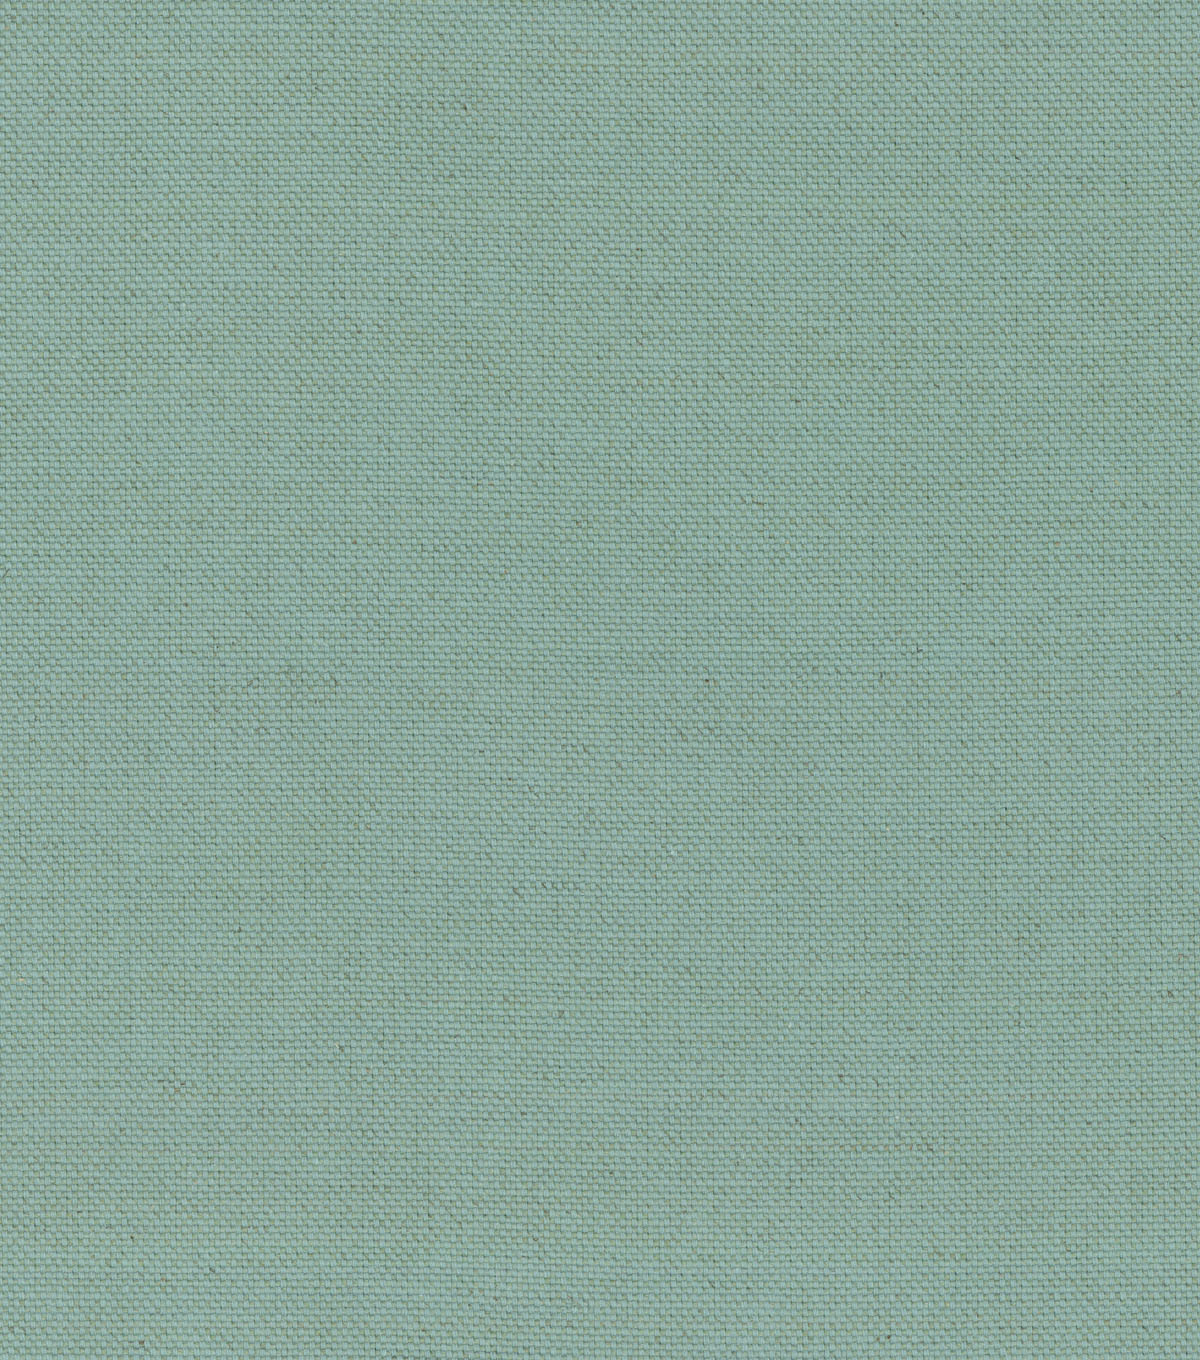 P/K Lifestyles Solid Fabric 54\u0022-Union Solid/Spruce